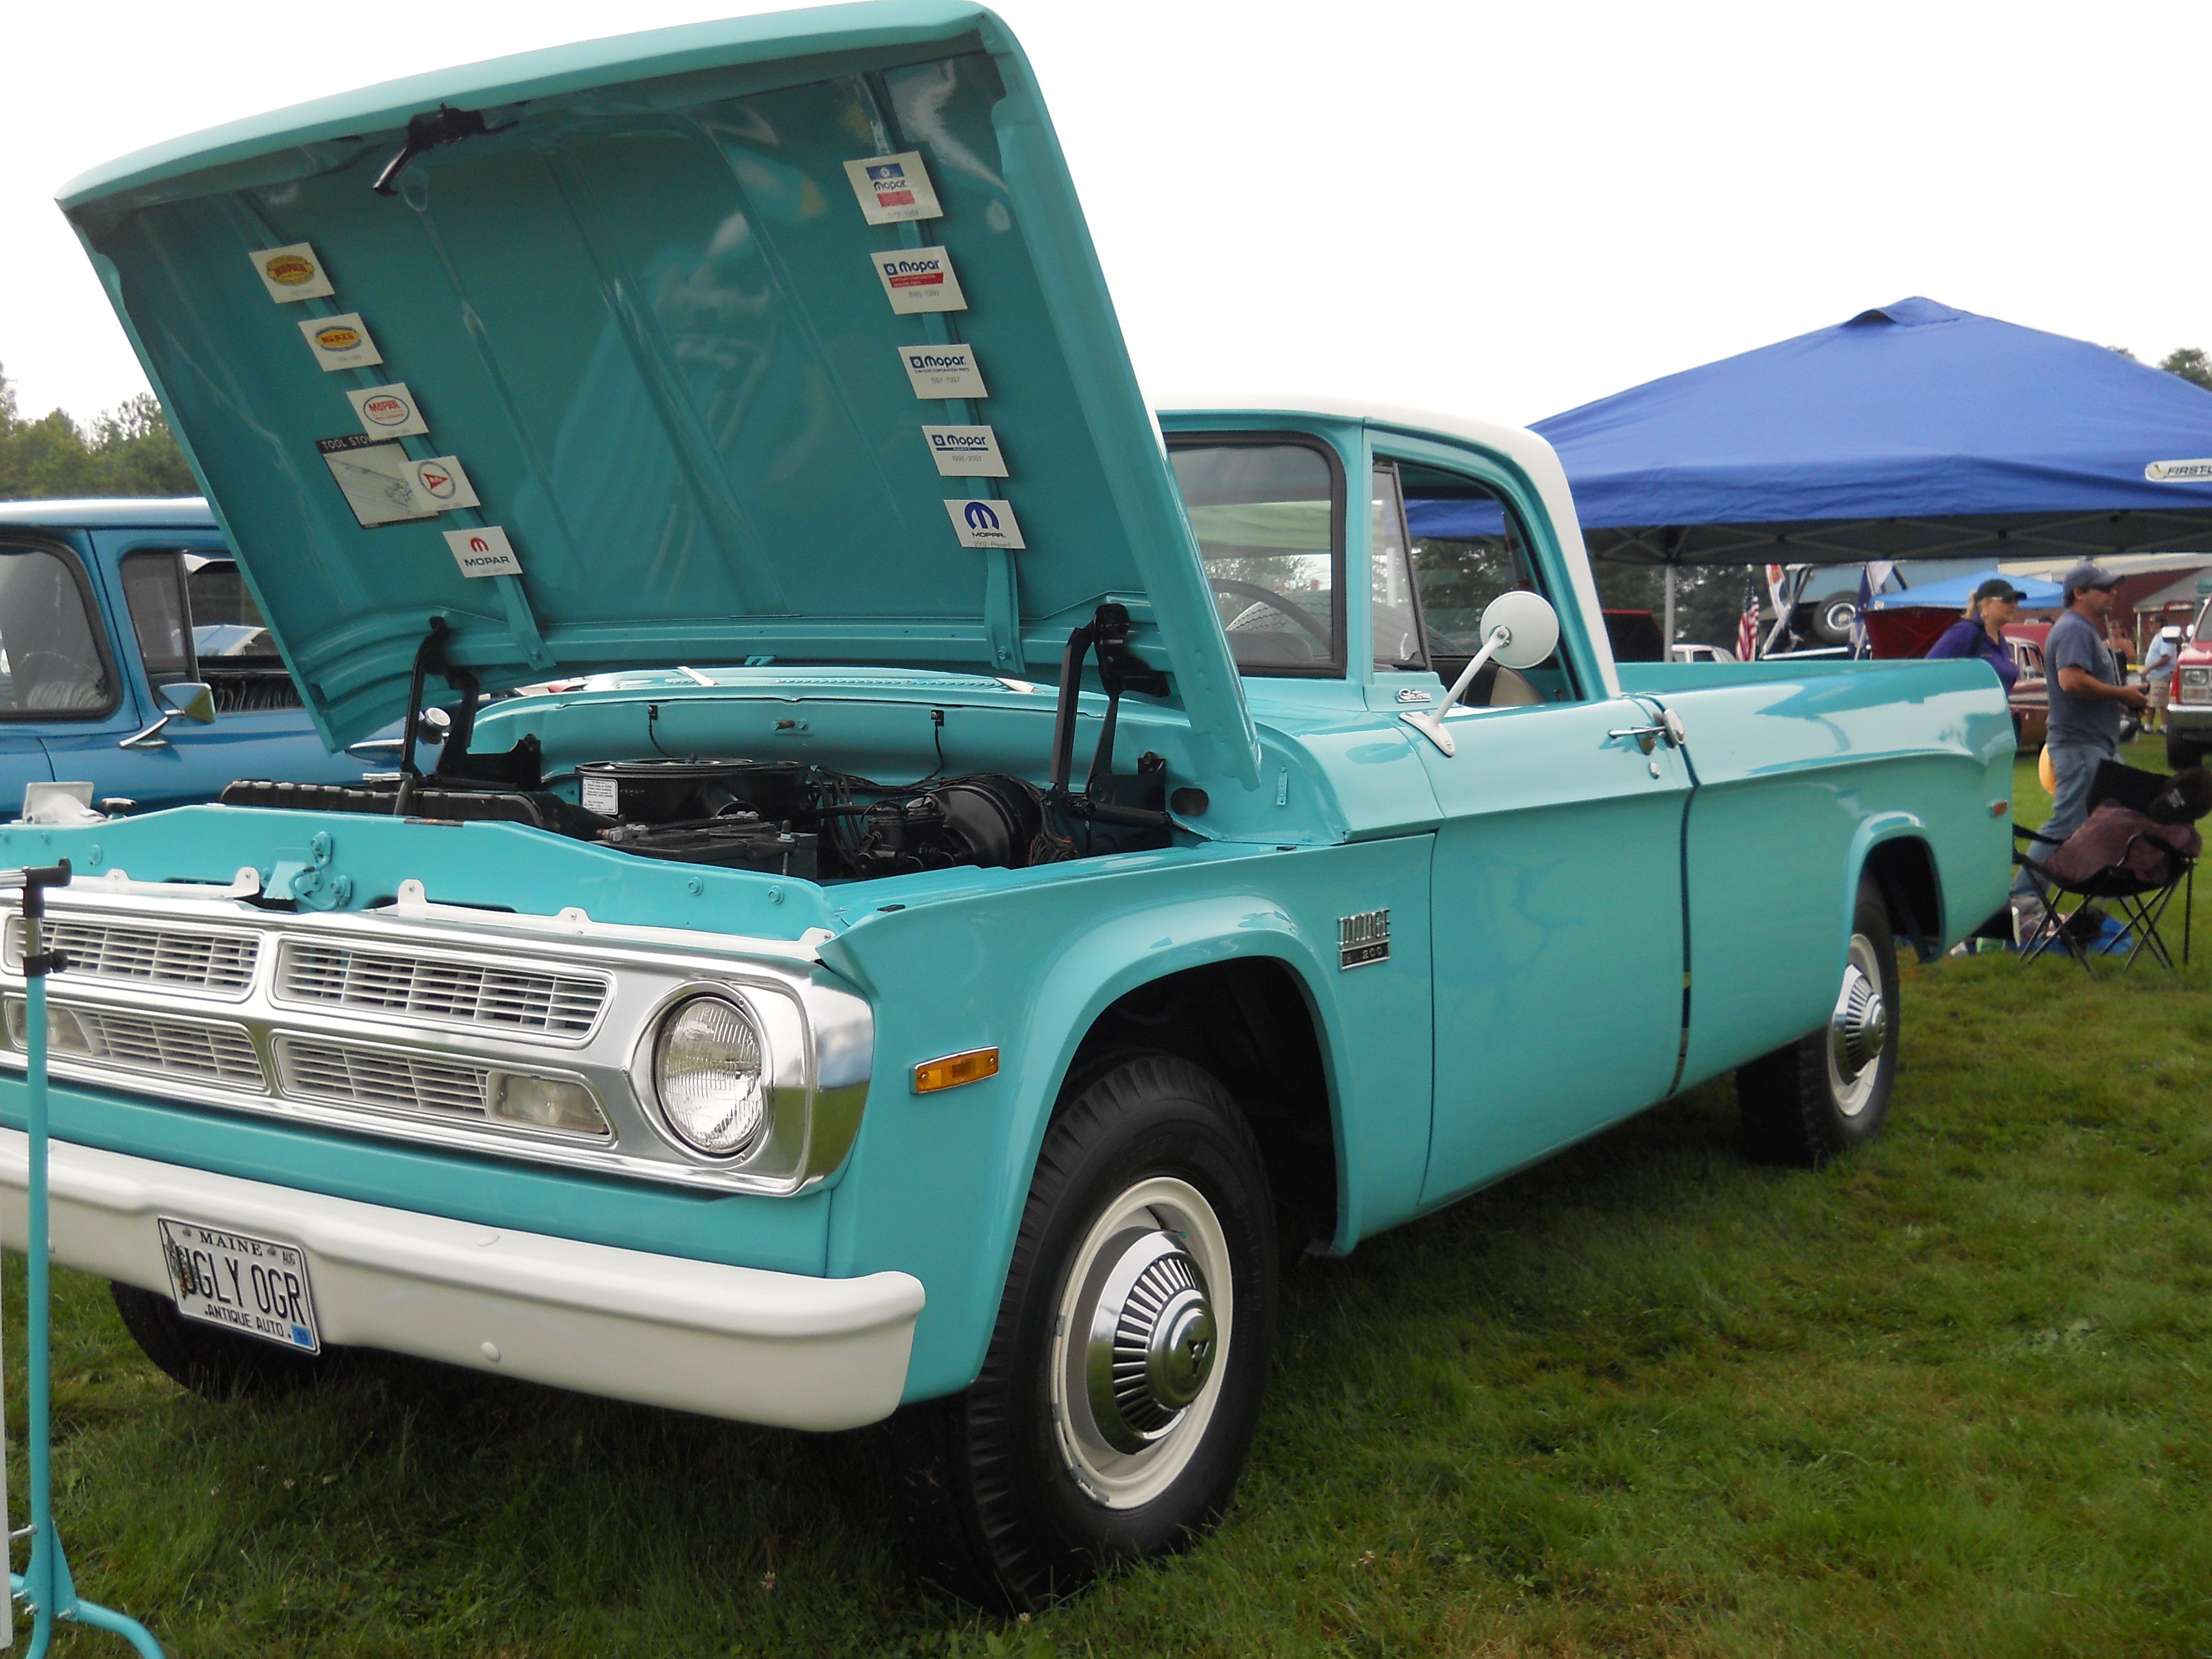 Are used 1970 pickup trucks considered vintage or antique?